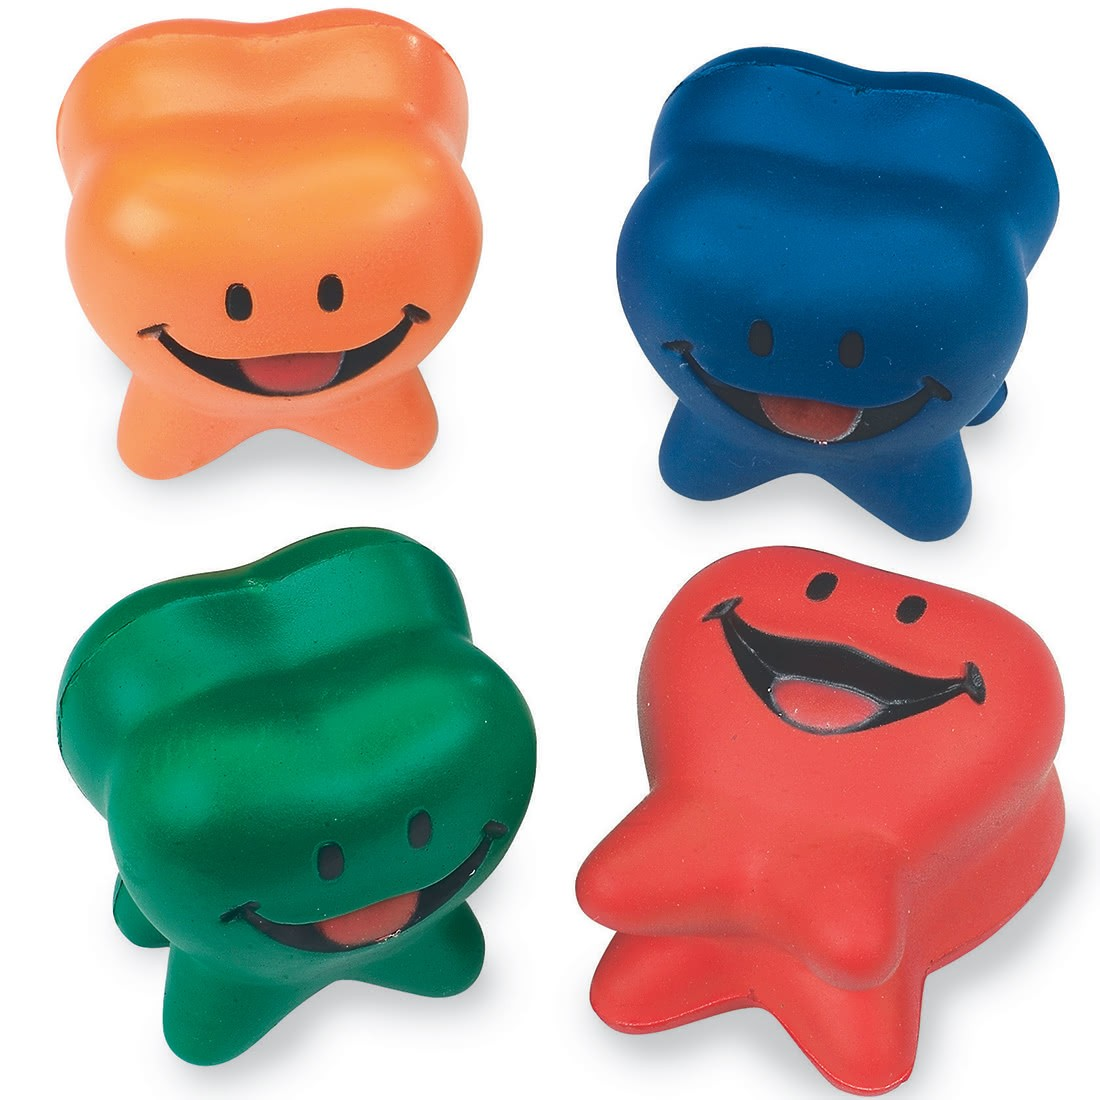 Happy Tooth Stress Toys [image]